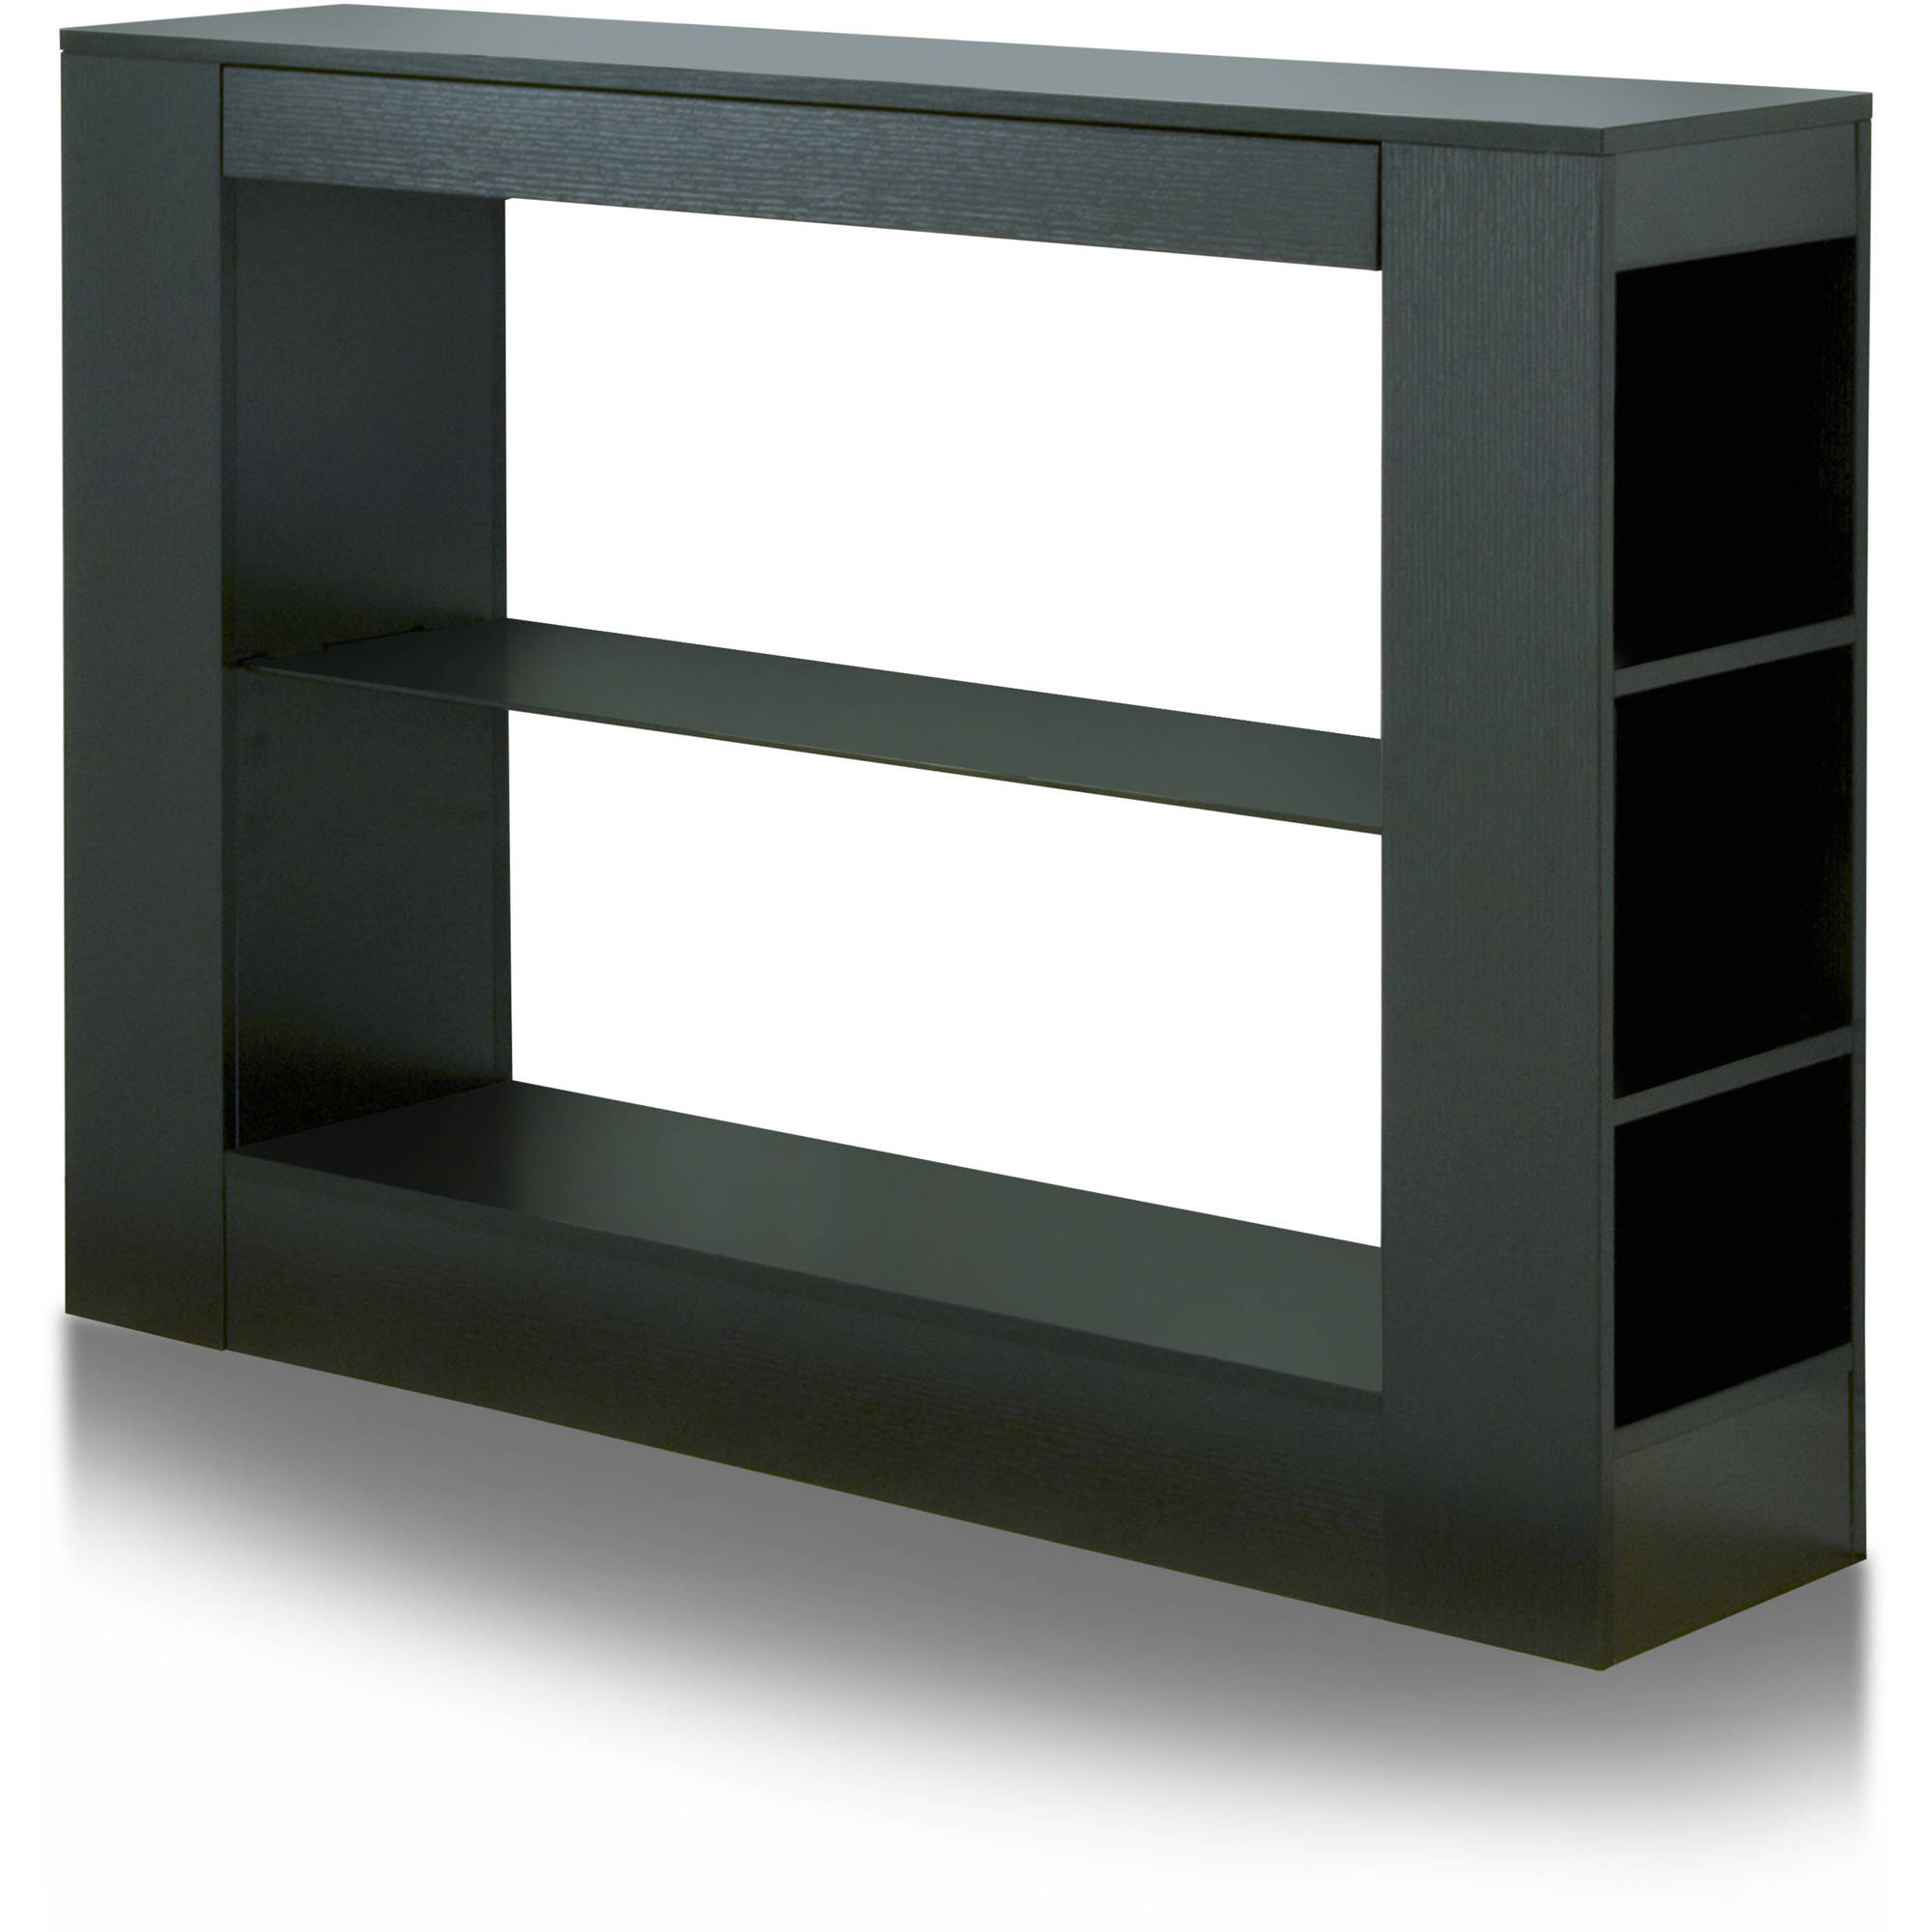 Furniture of America Garland Contemporary Dijning Buffet, Black by Furniture of America